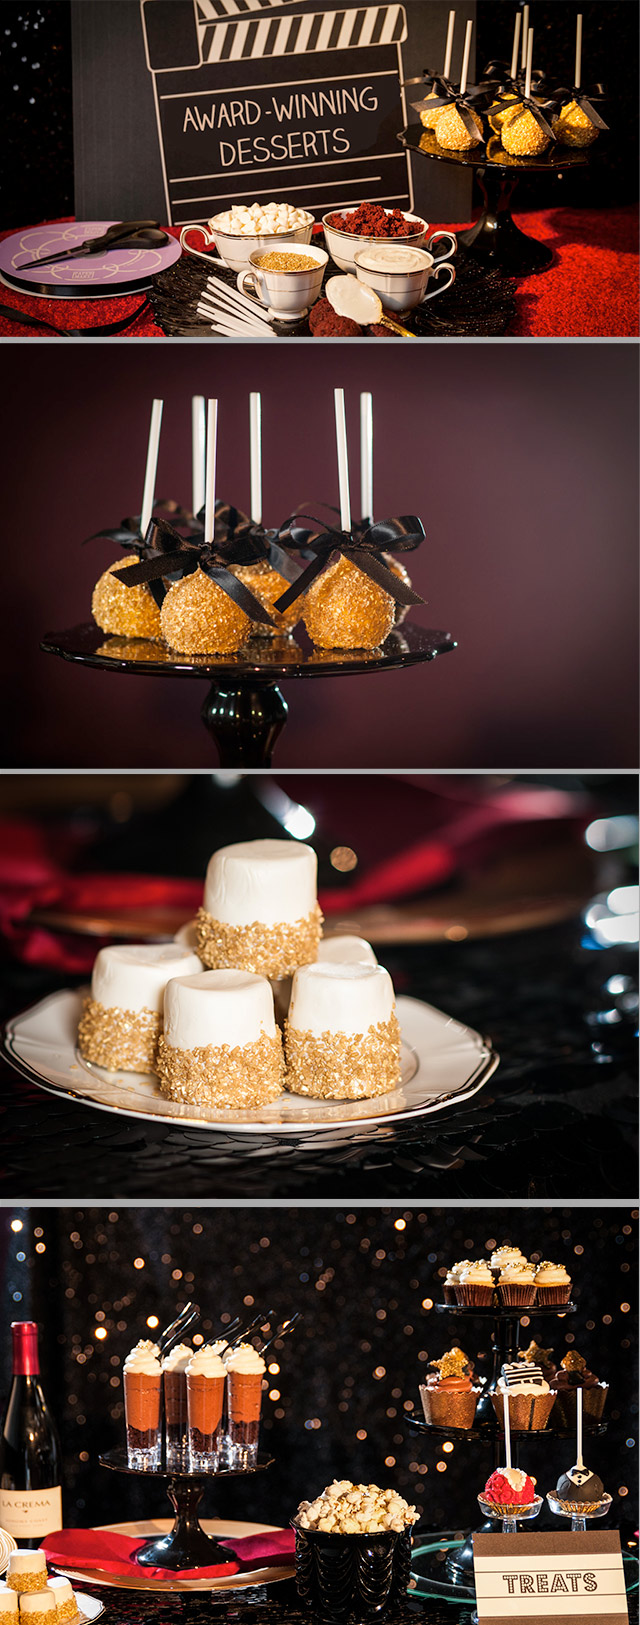 Looking for a dessert idea worthy of a Hollywood award show? From Golden Cake Pops to blinged-up popcorn we have the ultimate guide to creating a dessert bar the Academy would be proud of.